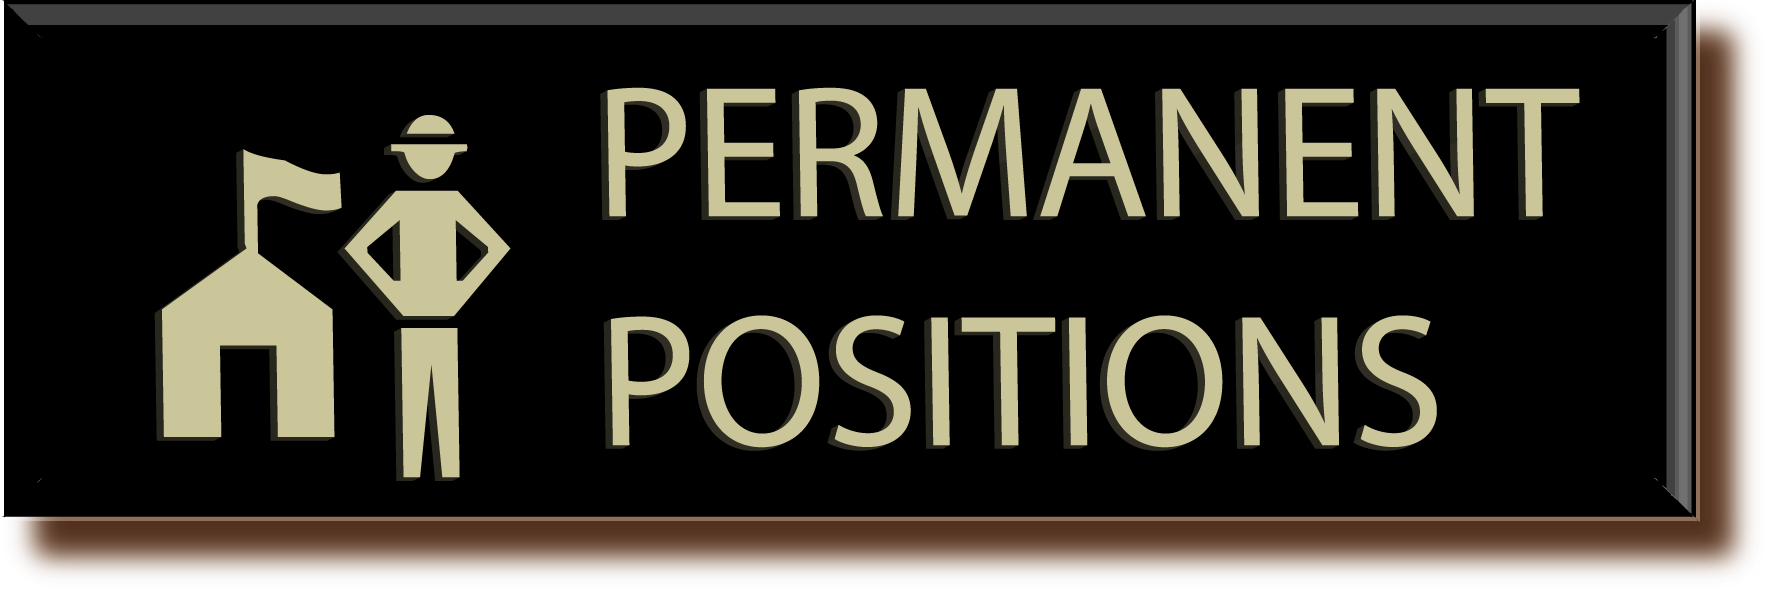 Permanent Positions